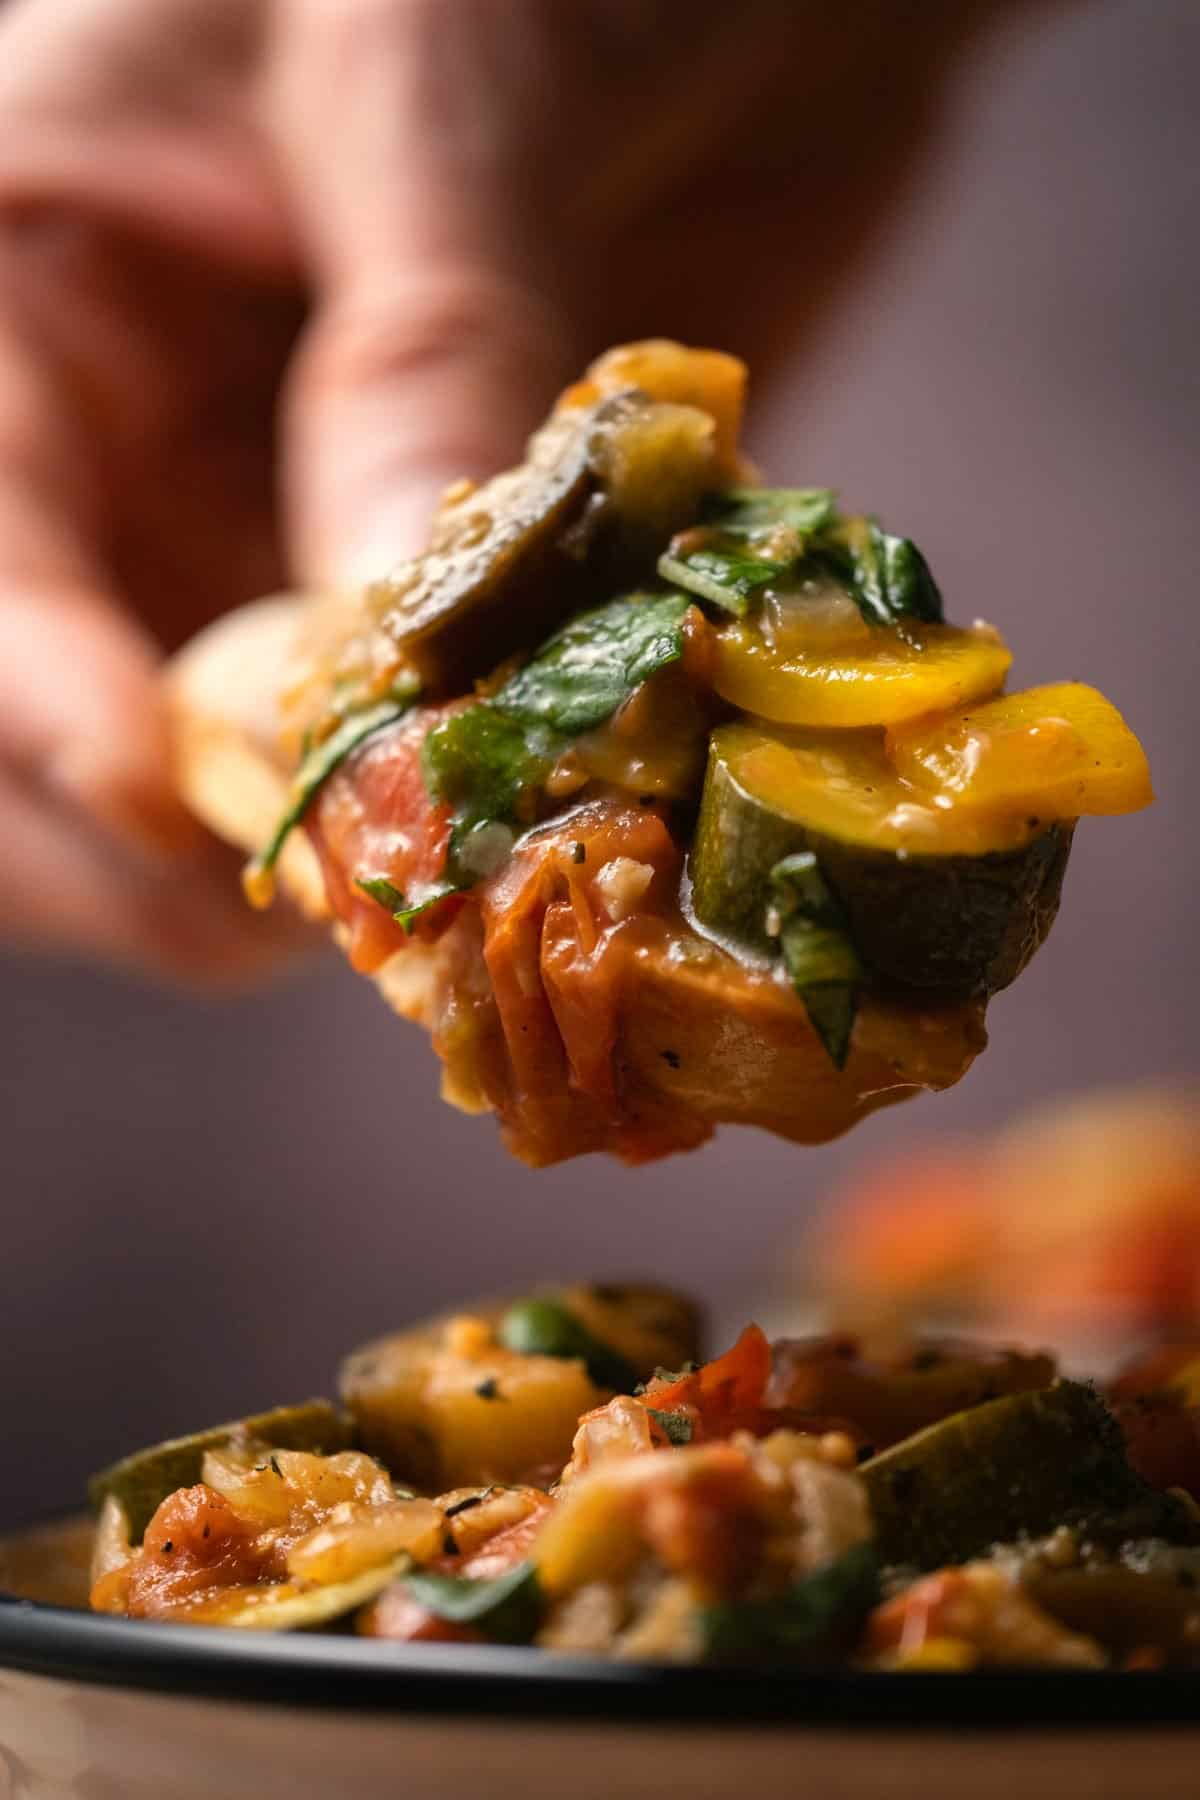 Ratatouille piled up on a slice of toasted baguette.